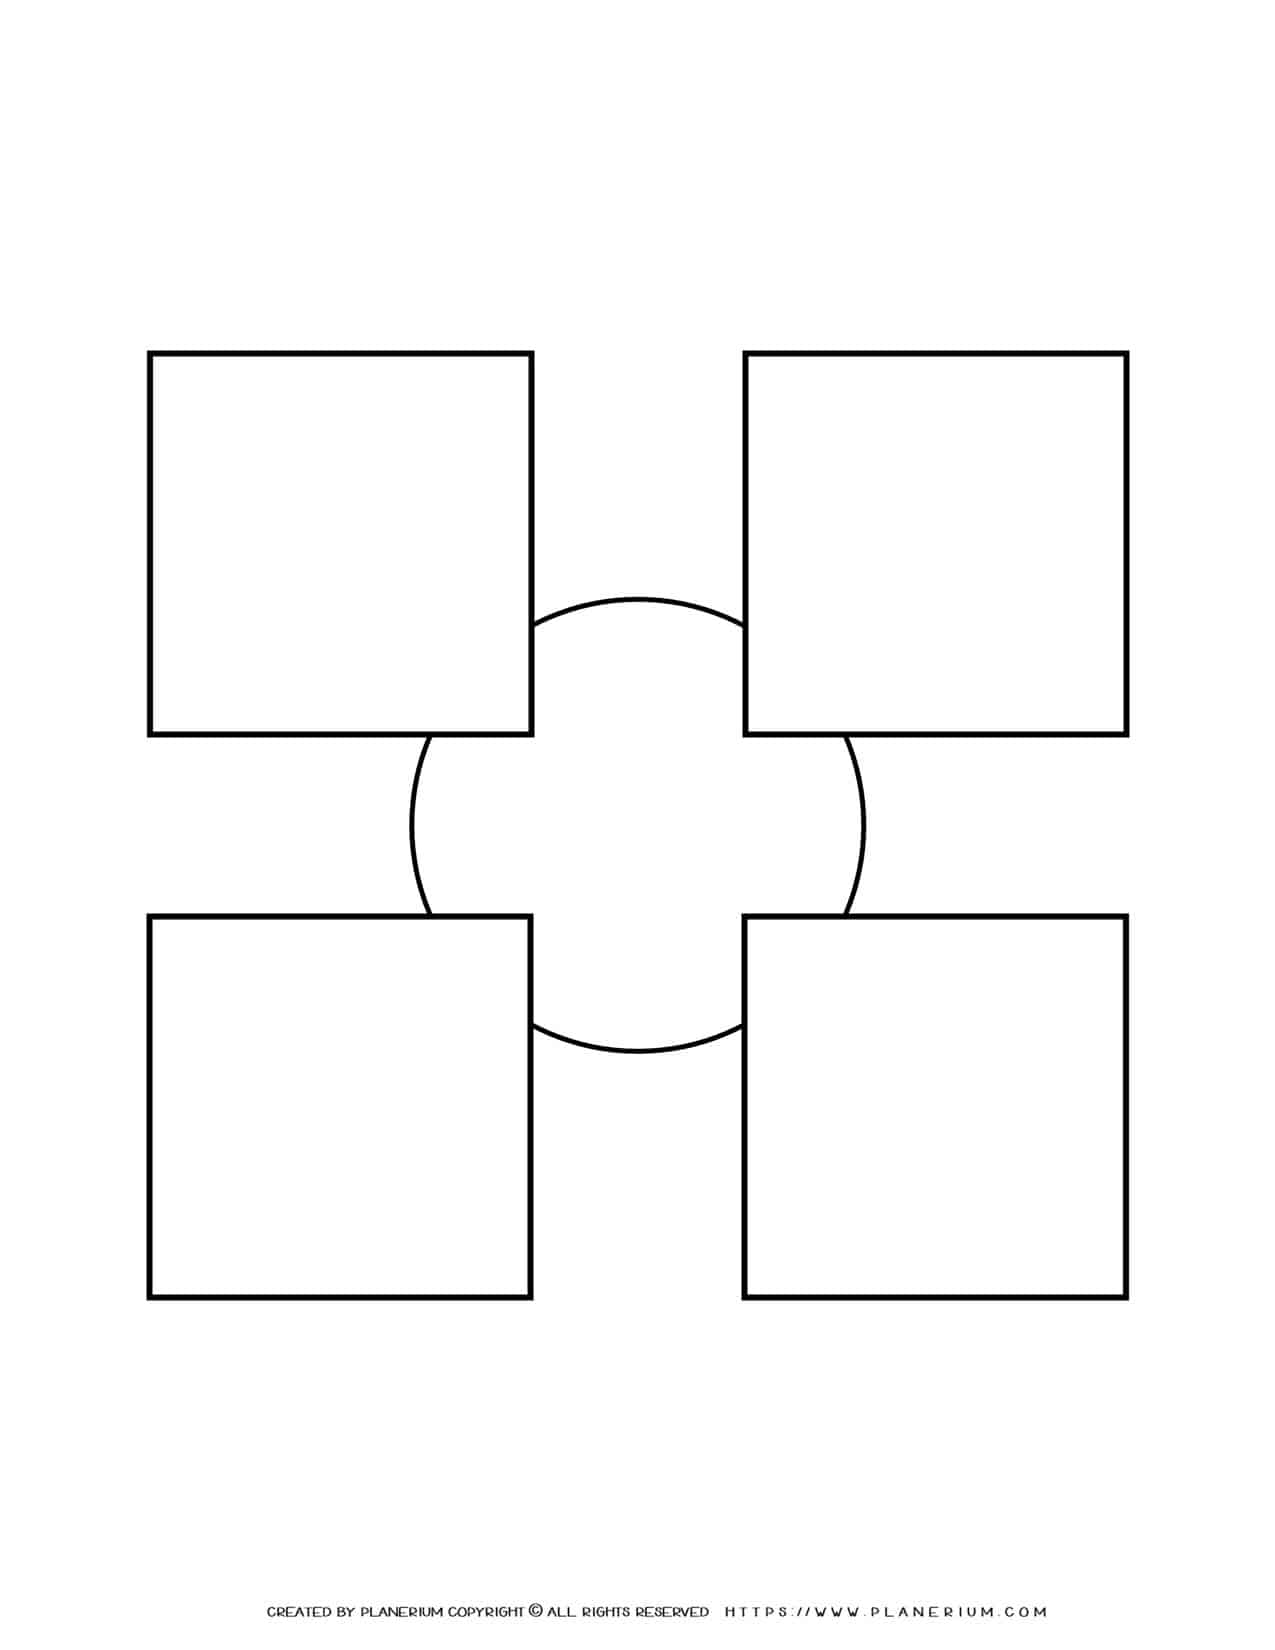 Sequence Chart Template - Four Squares on a Small Circle   Planerium